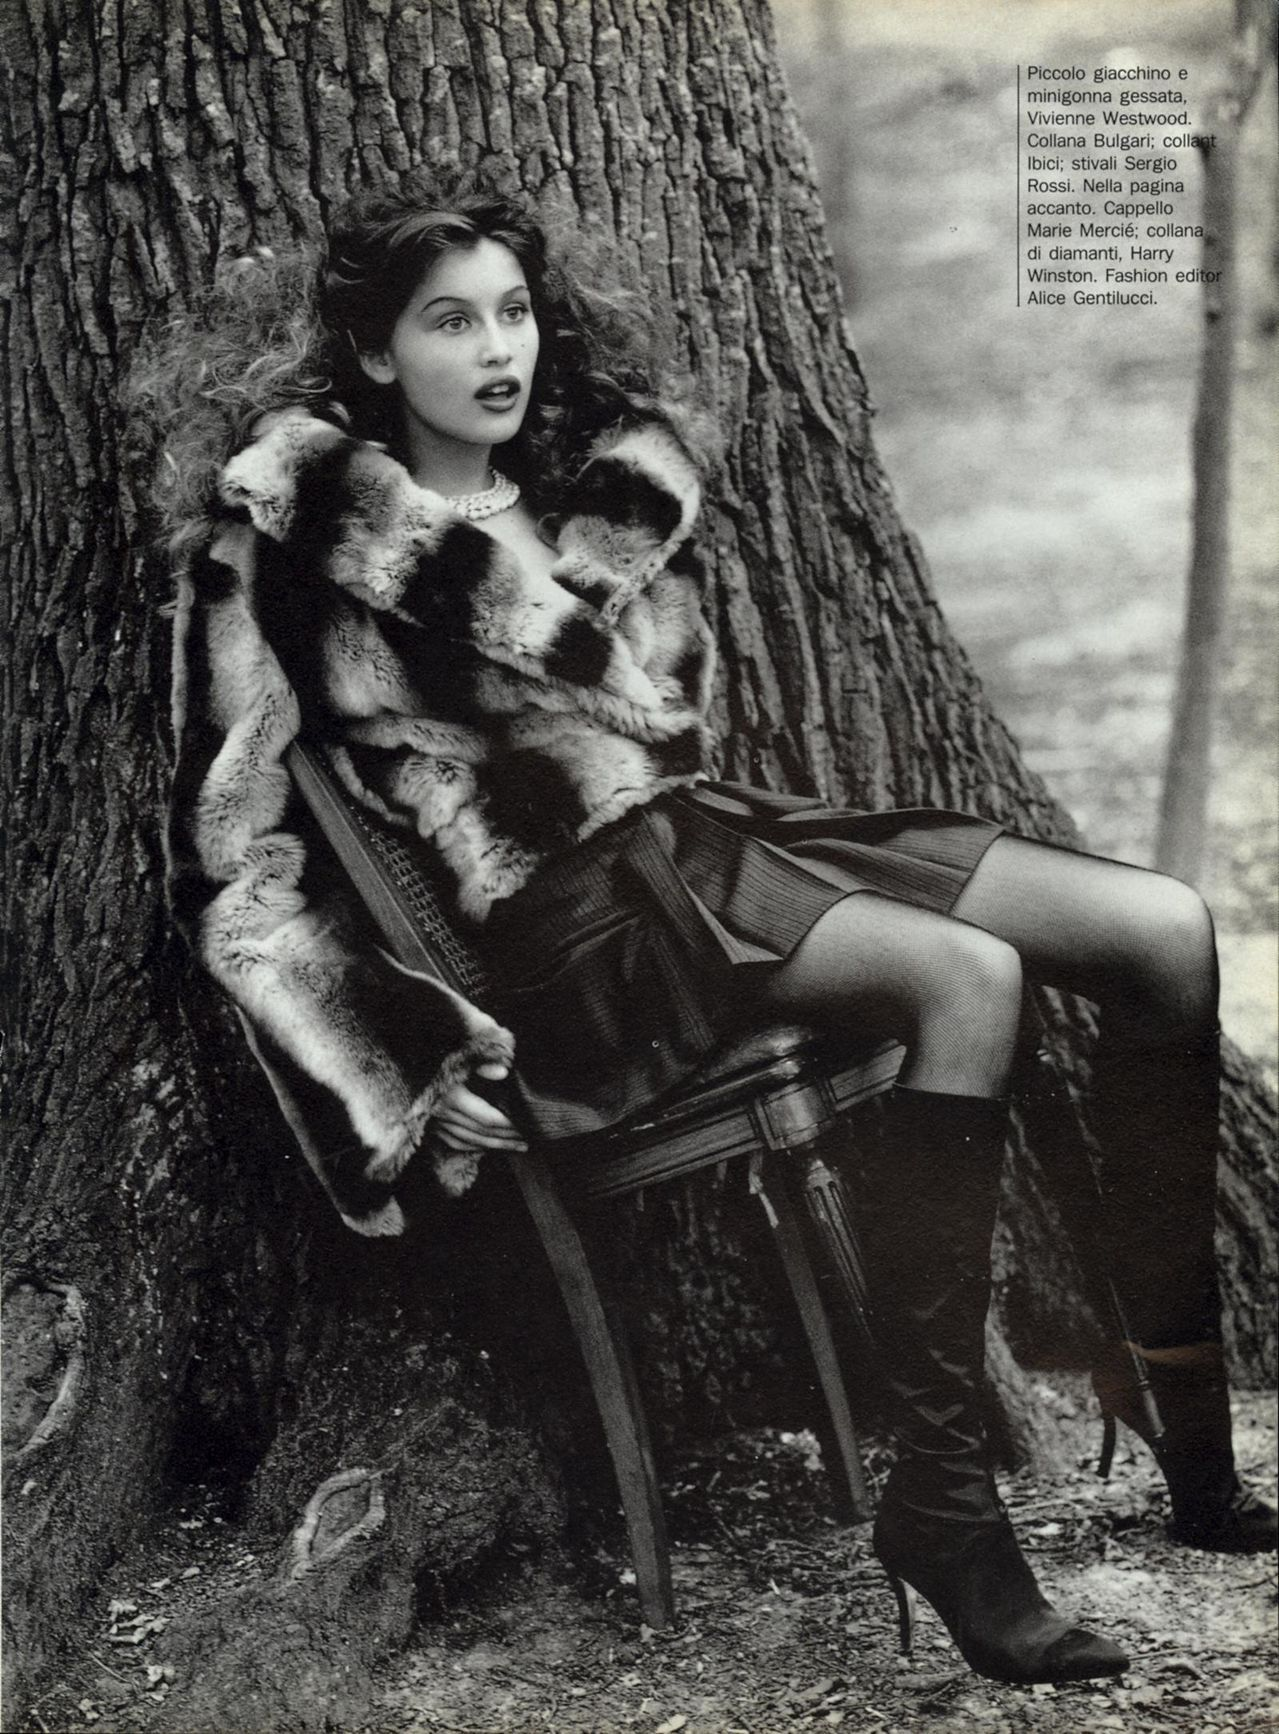 Laetitia Casta - Vogue Italia by Arthur Elgort, November 1994